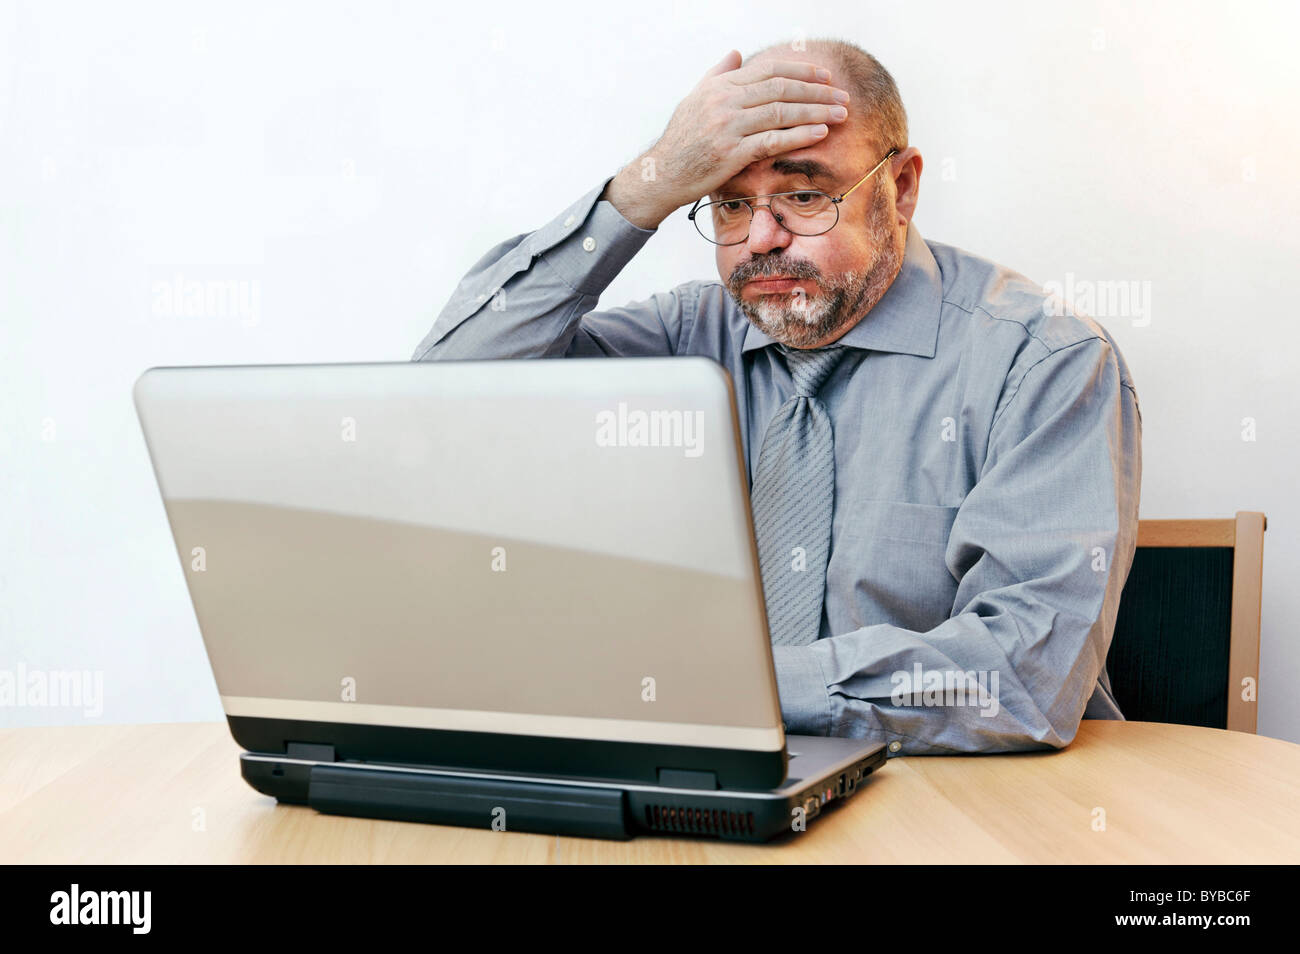 Stressed clerk on the laptop - Stock Image